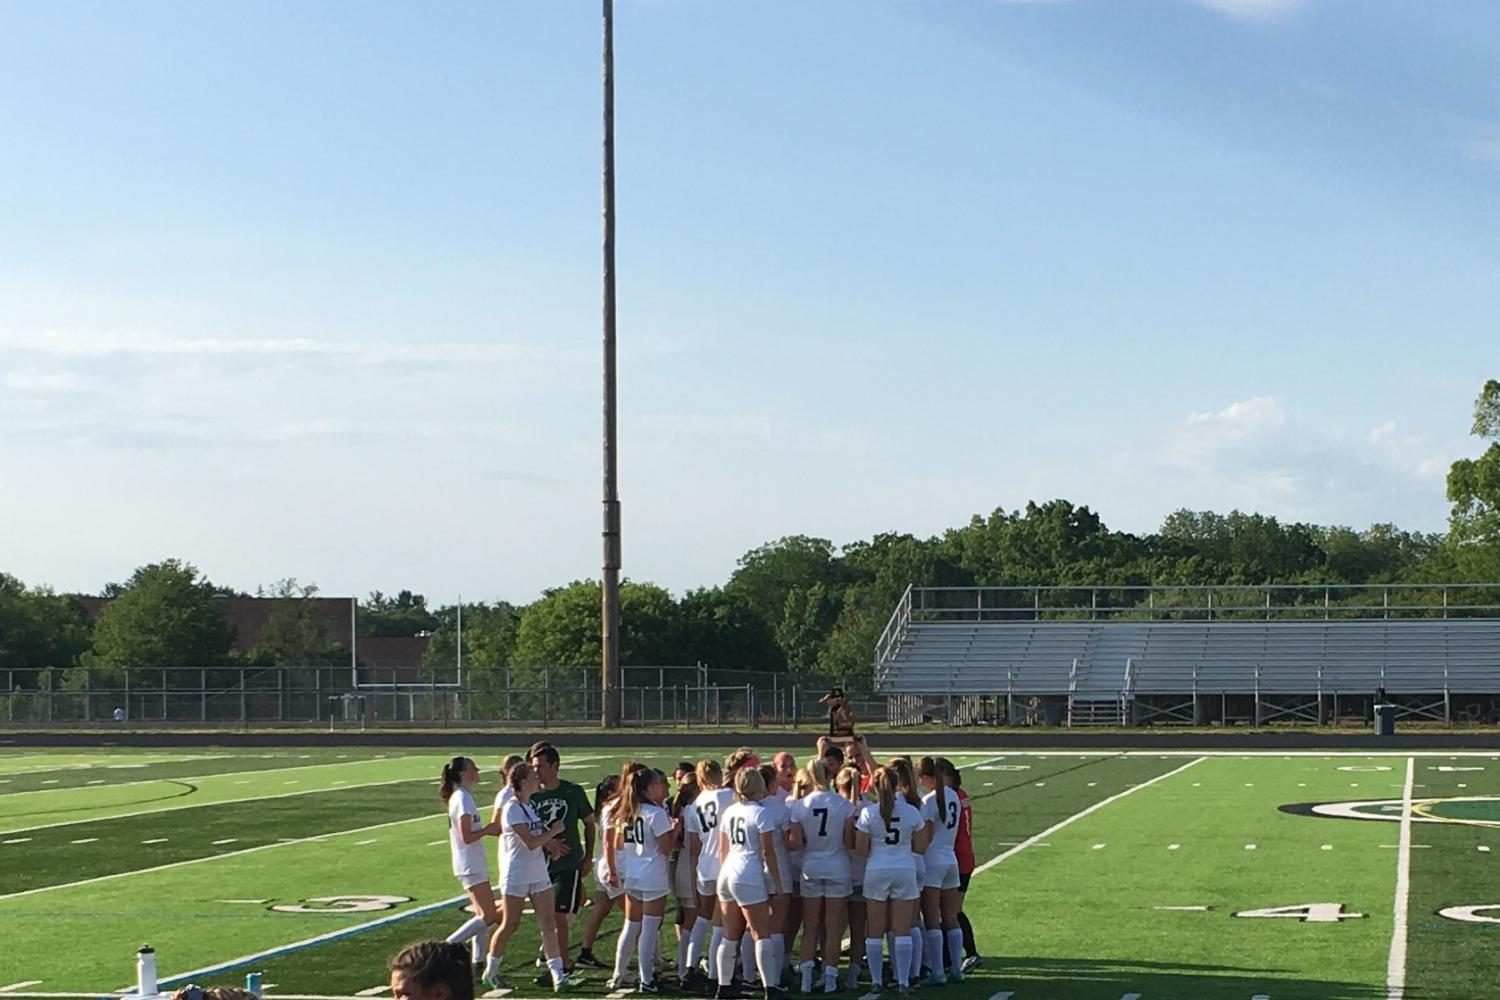 Division 1 District Final – FHC Varsity Girls Soccer vs. Rockford: June 3rd 2017